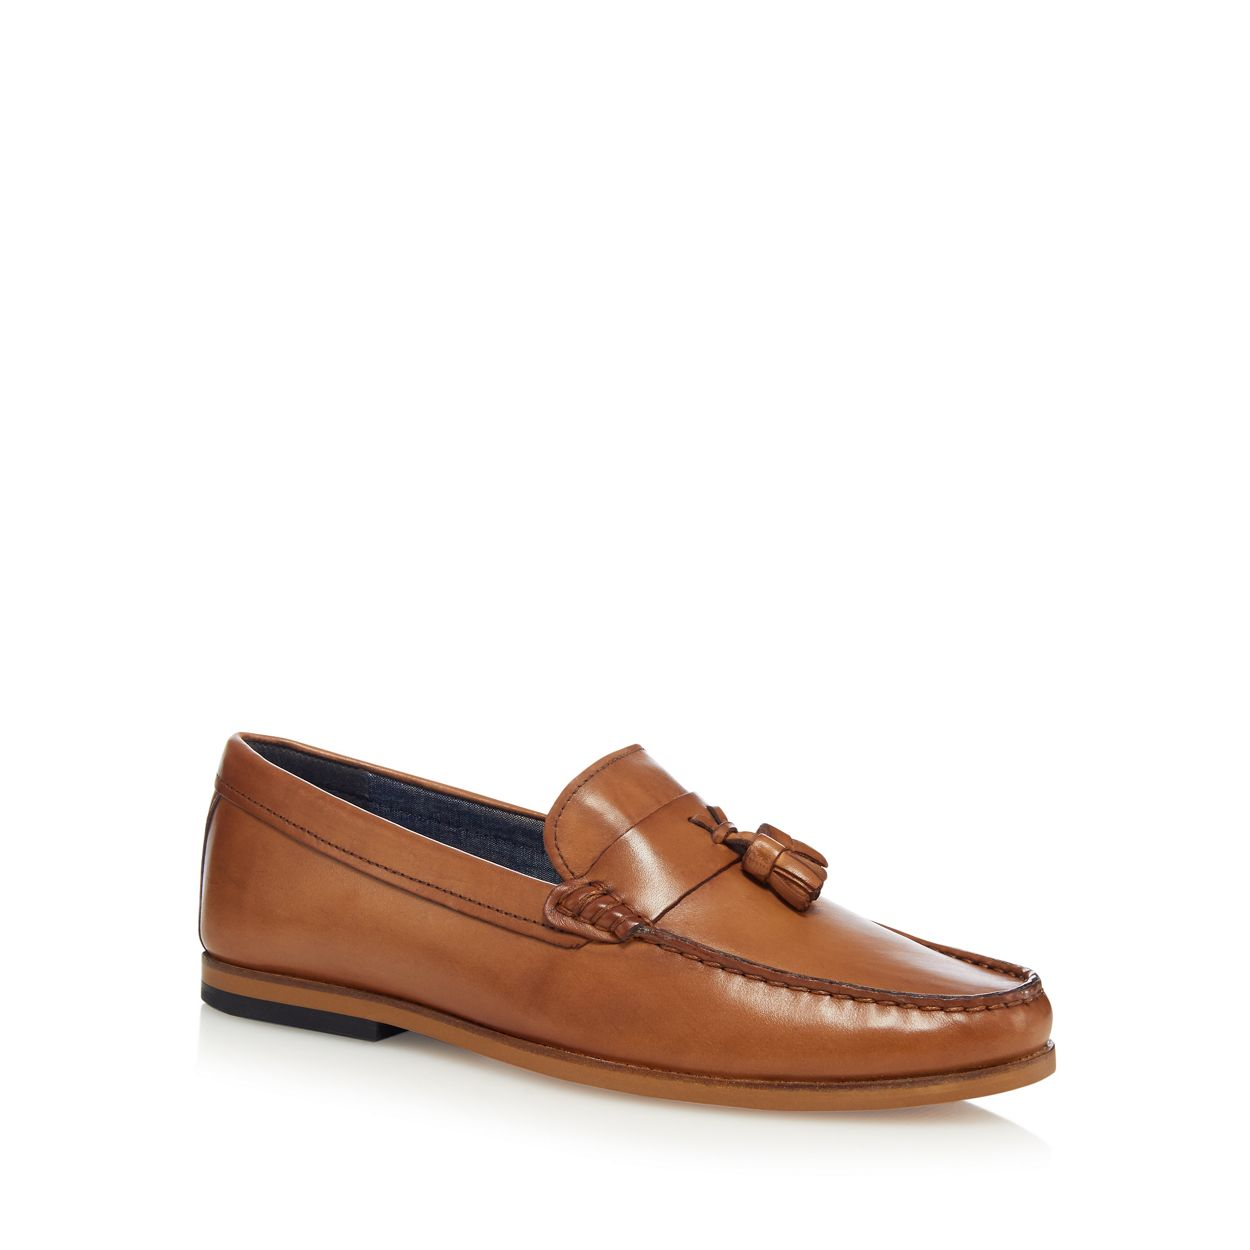 Red Herring Tan leather loafers